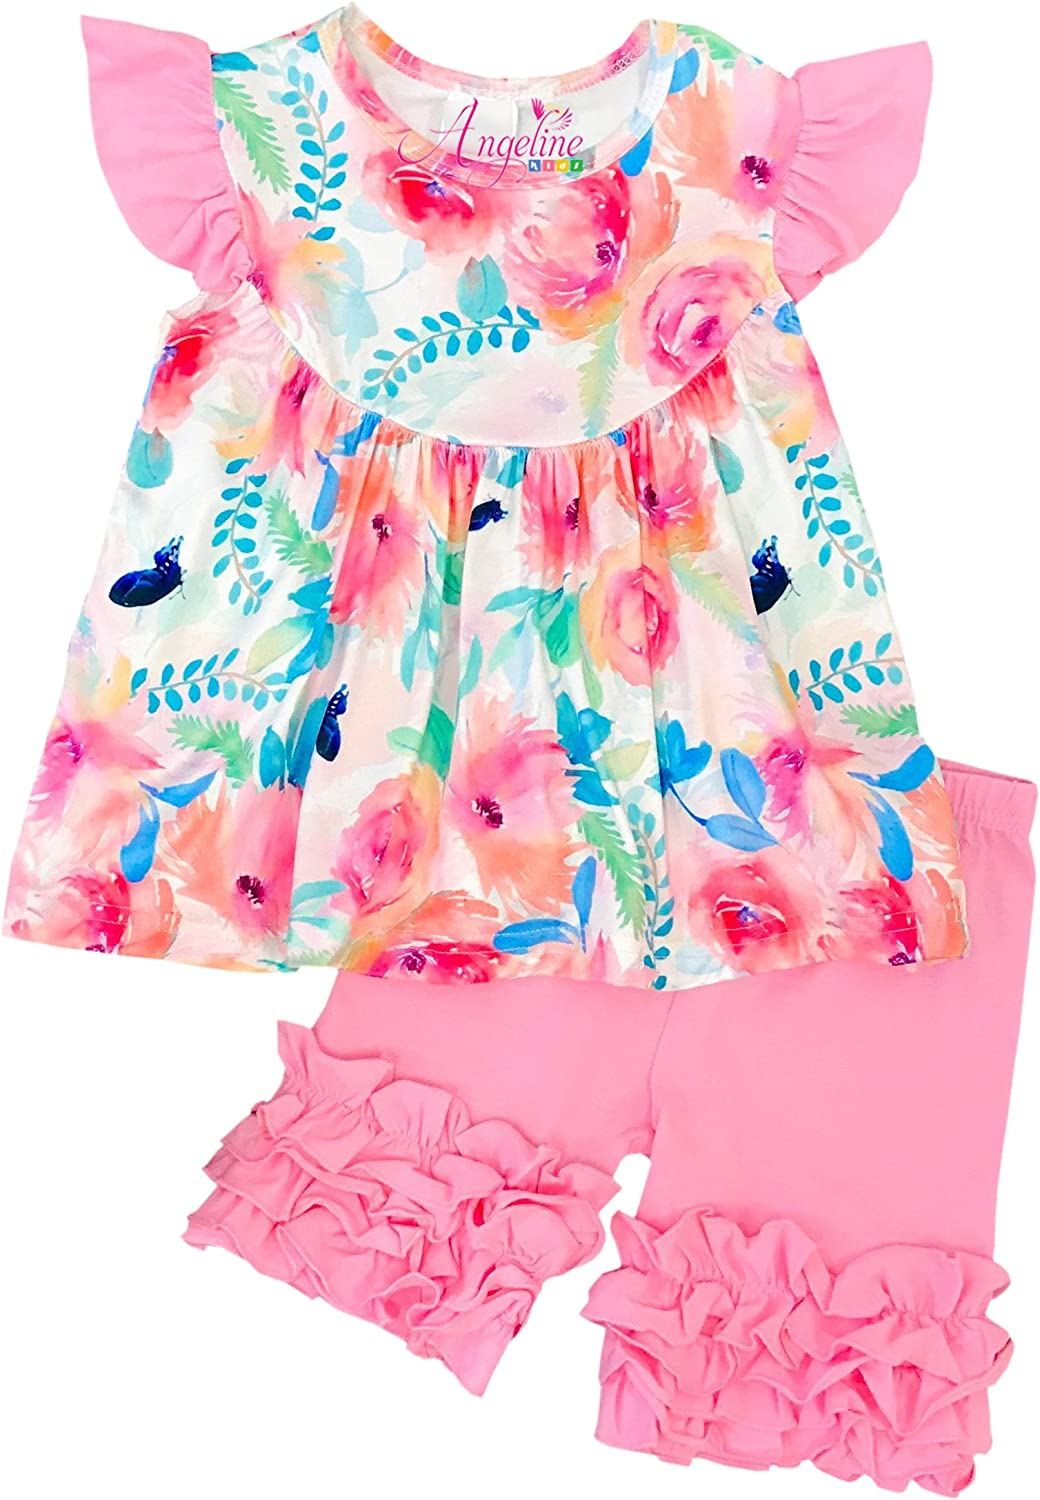 4346872bb3f1f PLEASE CHOOSE THE SIZE YOUR GIRL USUALLY WEARS. DO NOT refer to AMAZON\'s  General Size Chart. Size 2T is for average 2-3 year-old girls.